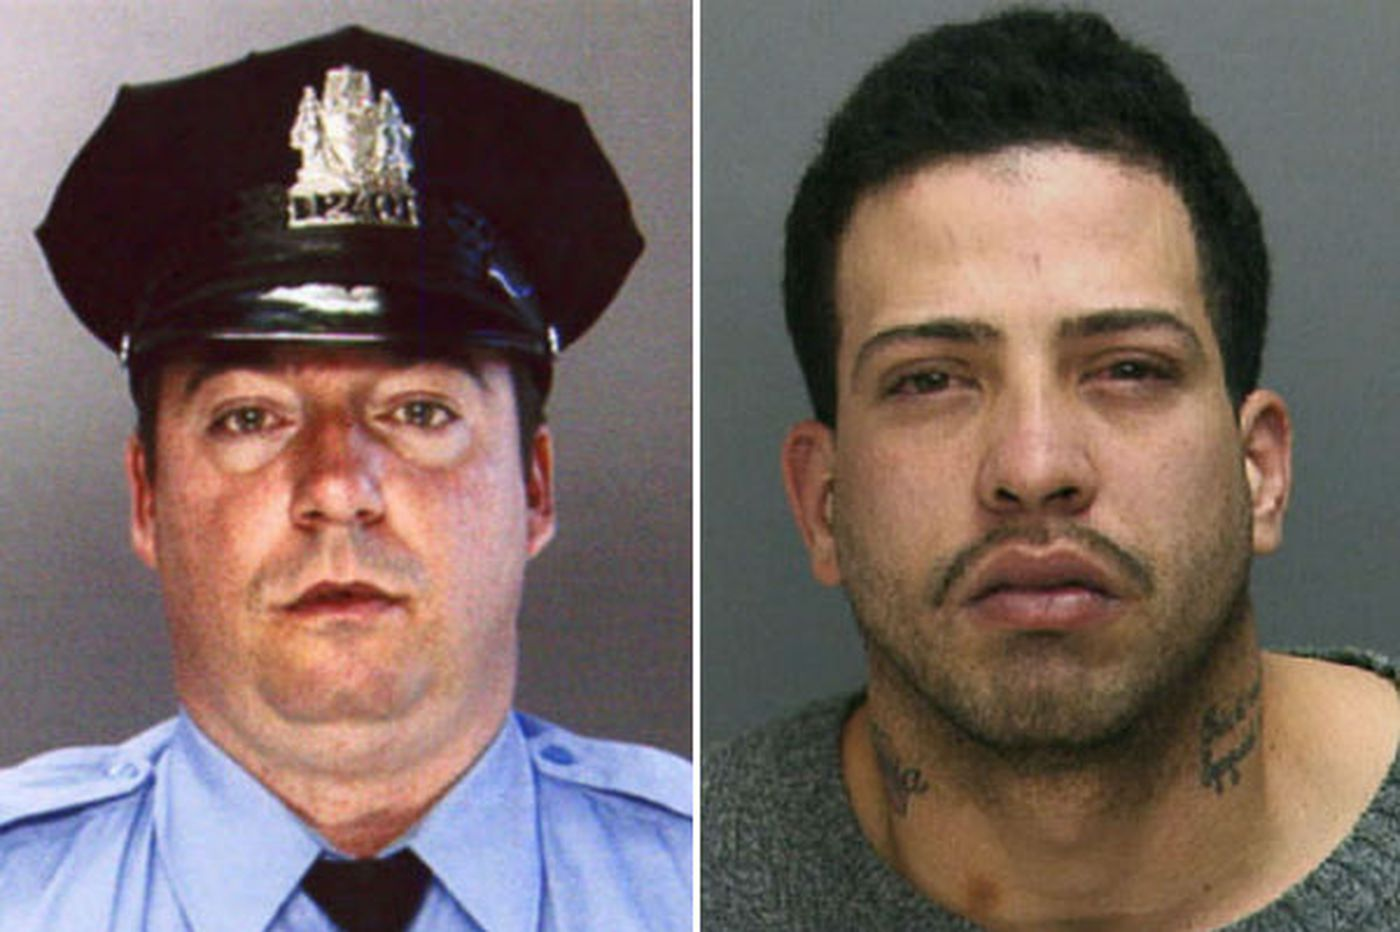 Cop testifies in attempted-murder trial of man who shot him in 2013